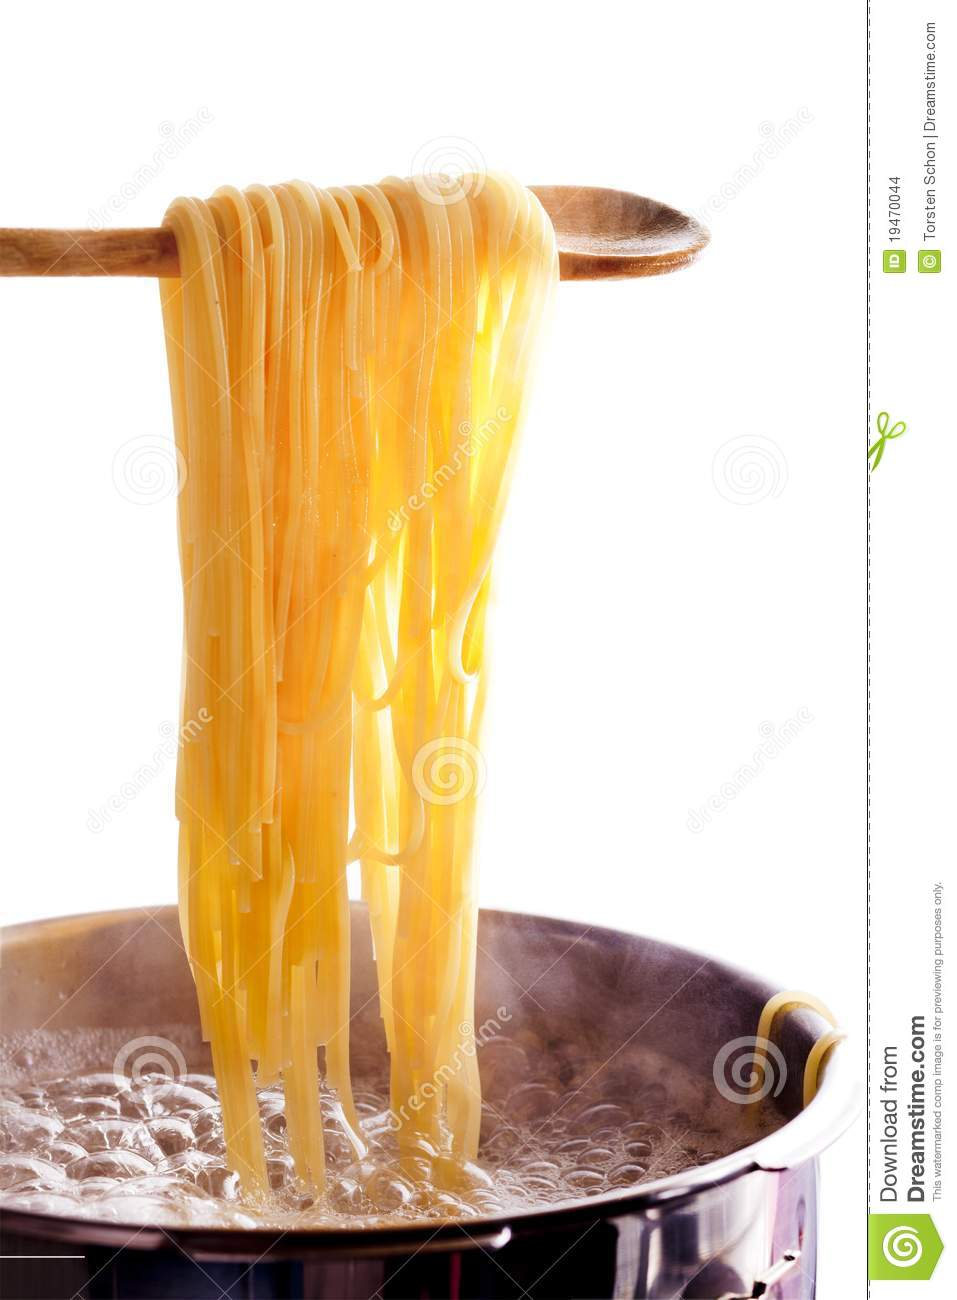 kitchen spoon tall table cooking spaghetti stock photo. image of boiled, wooden ...